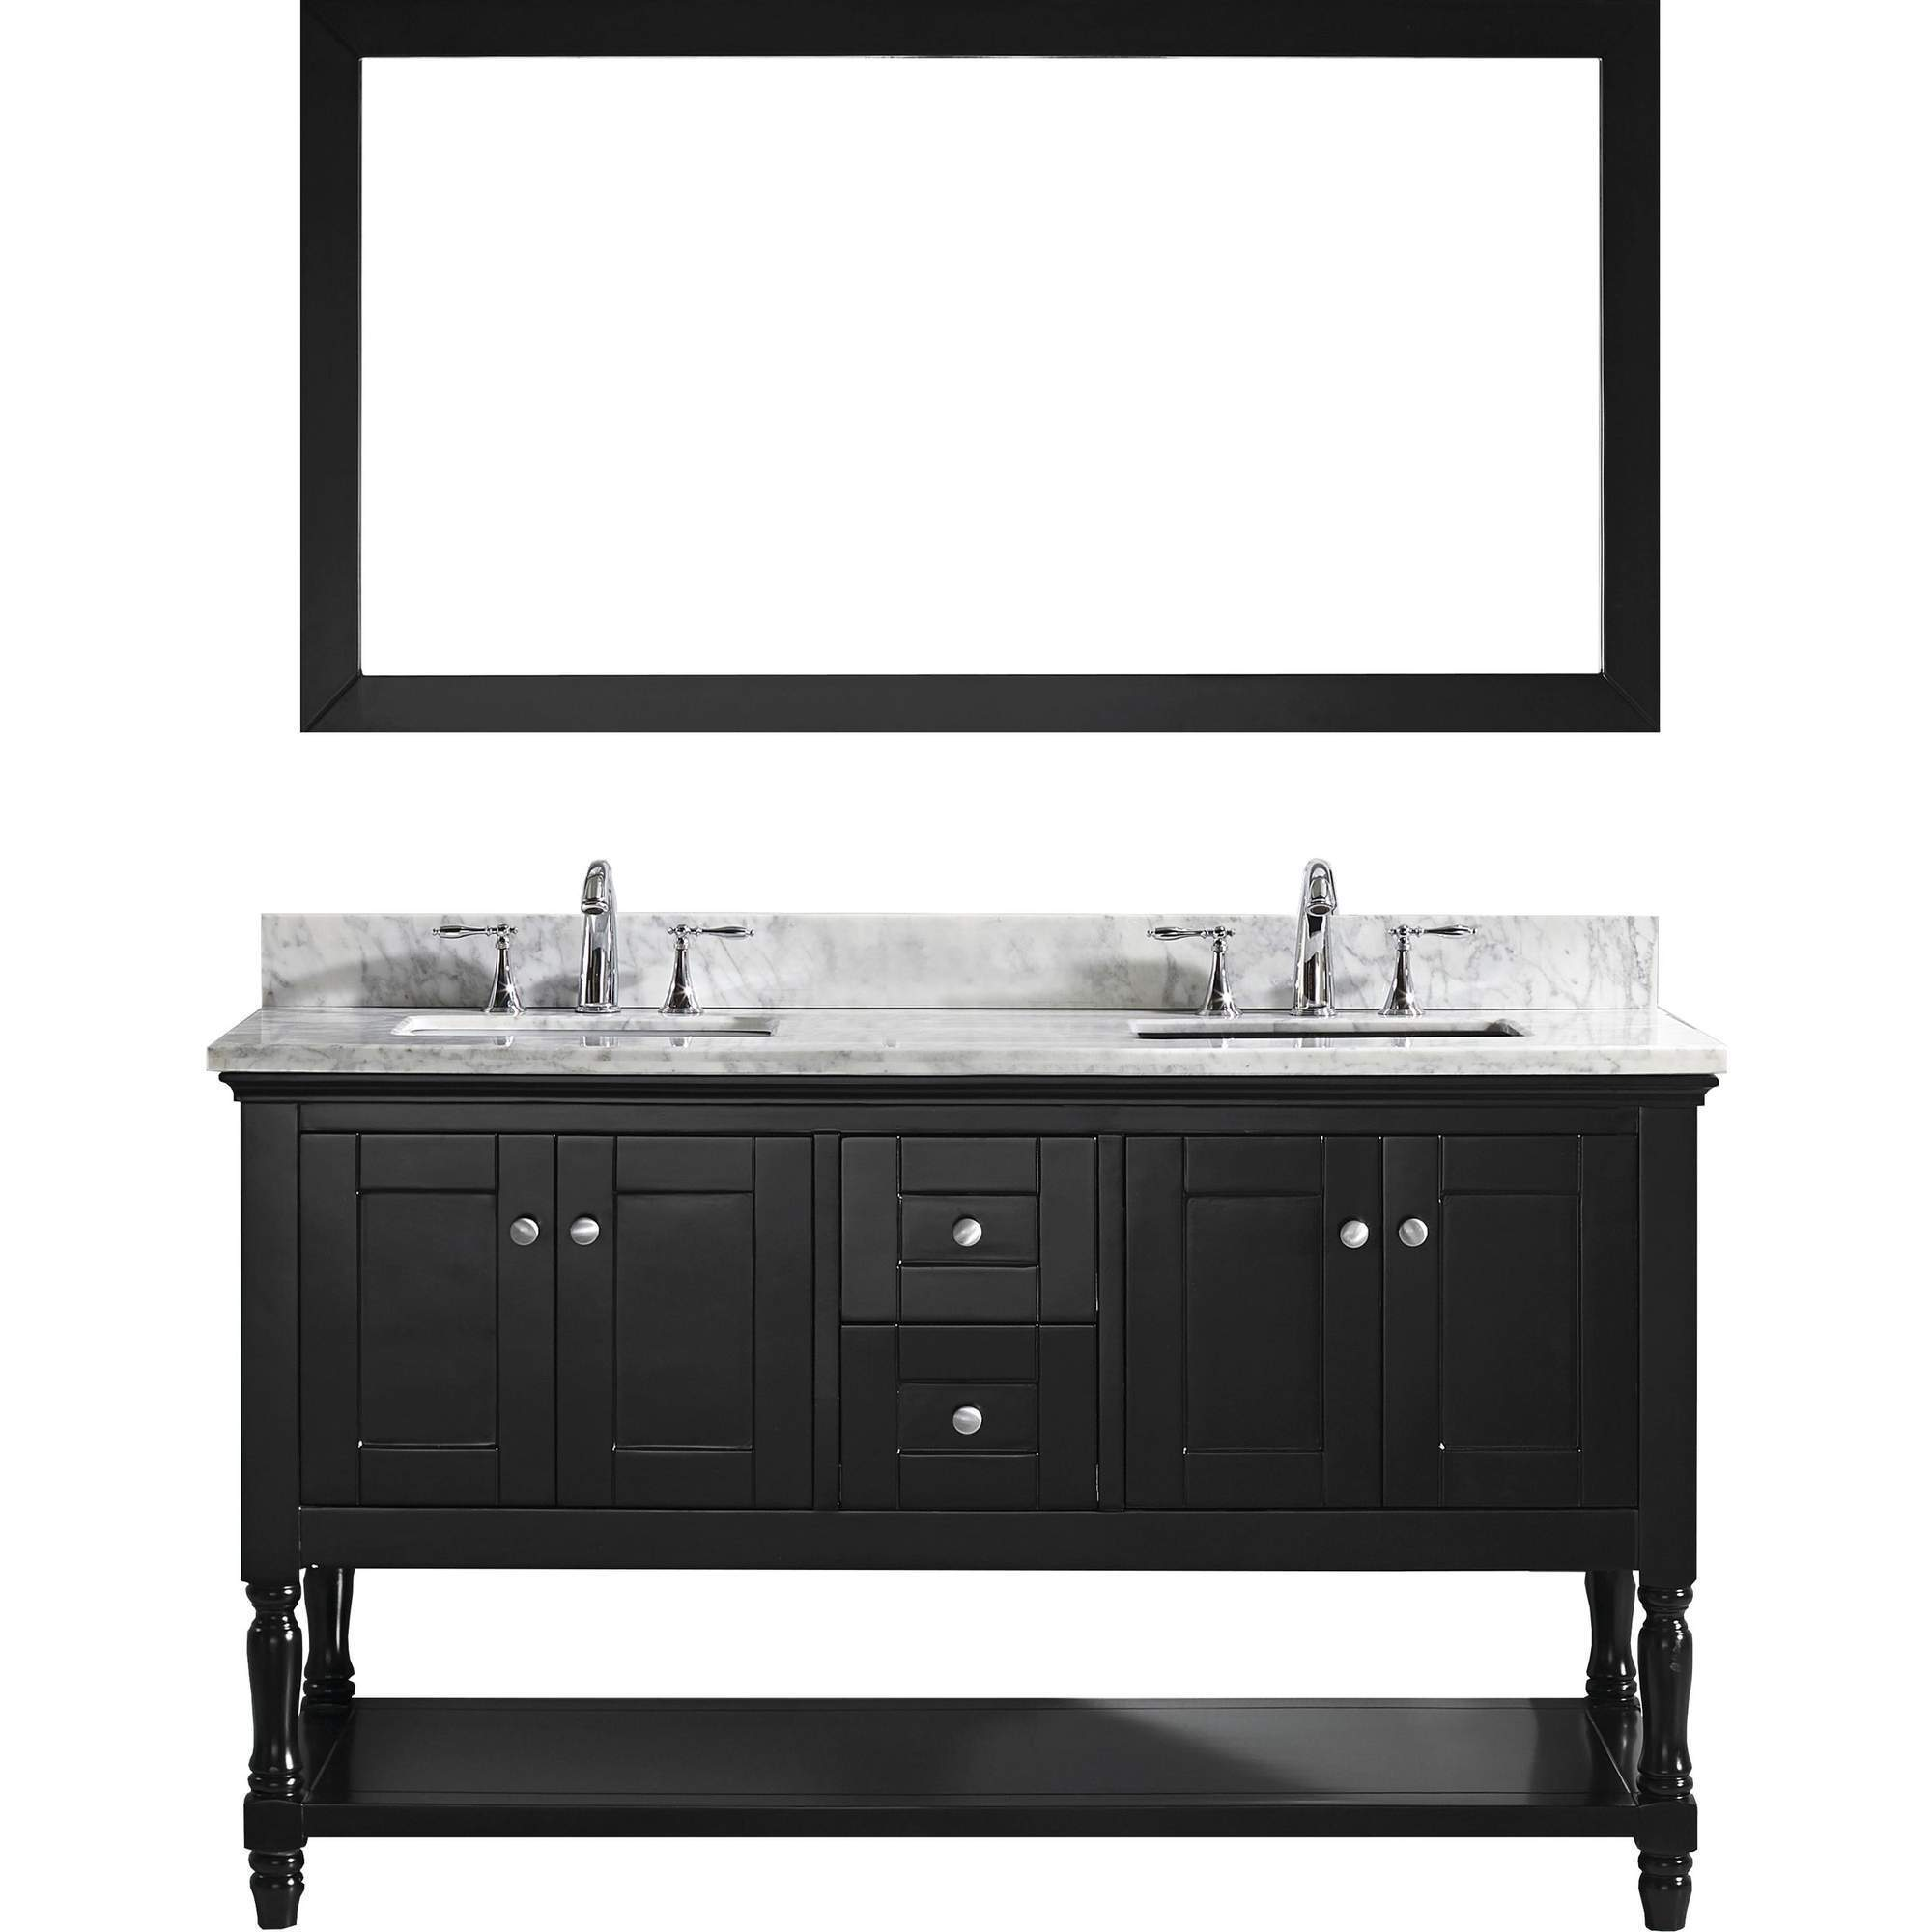 Julianna 60 Inch Single Vanity White Marble Top